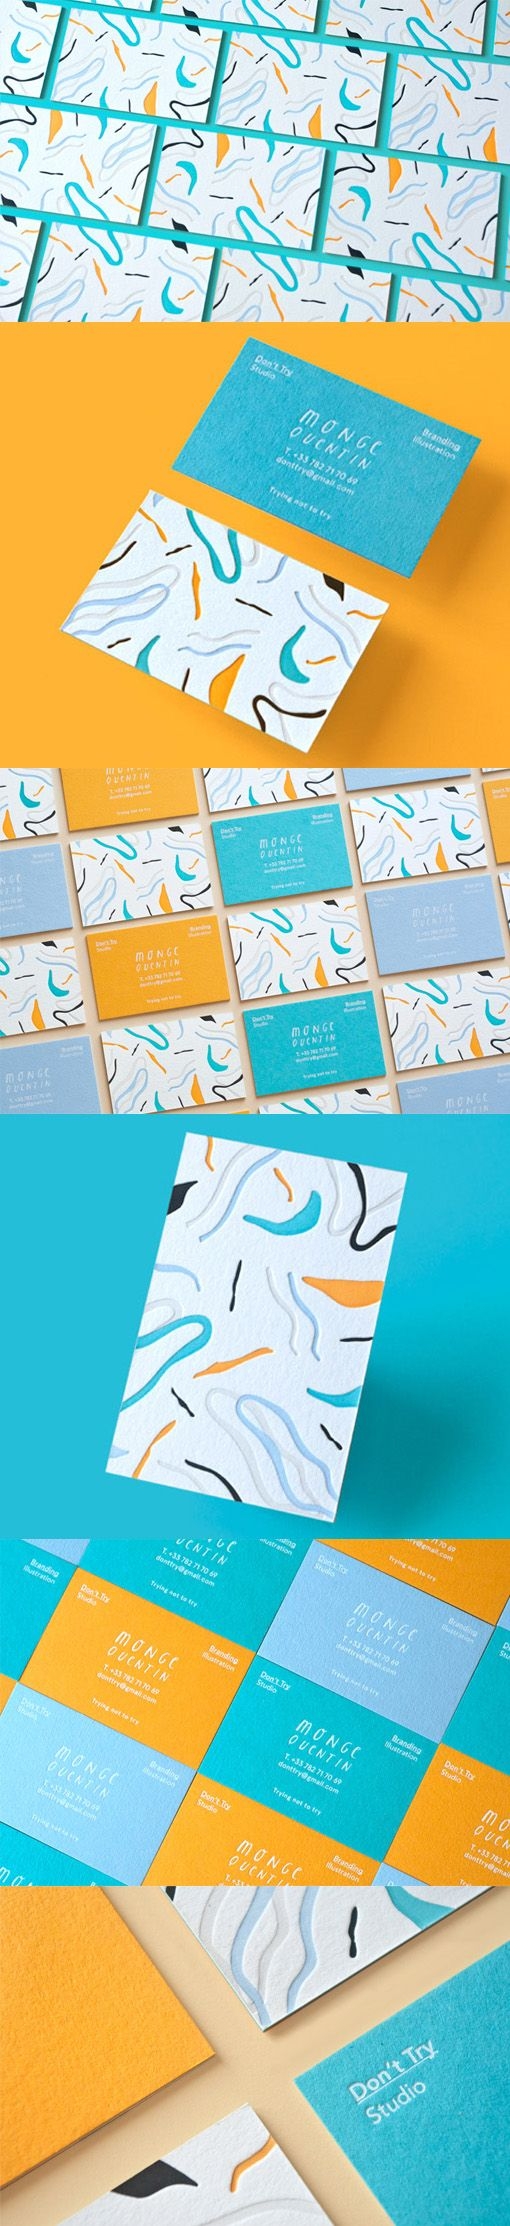 Playful And Bright Textured Letterpress Business Card For A Designer [repinned by www.kickresume.com]